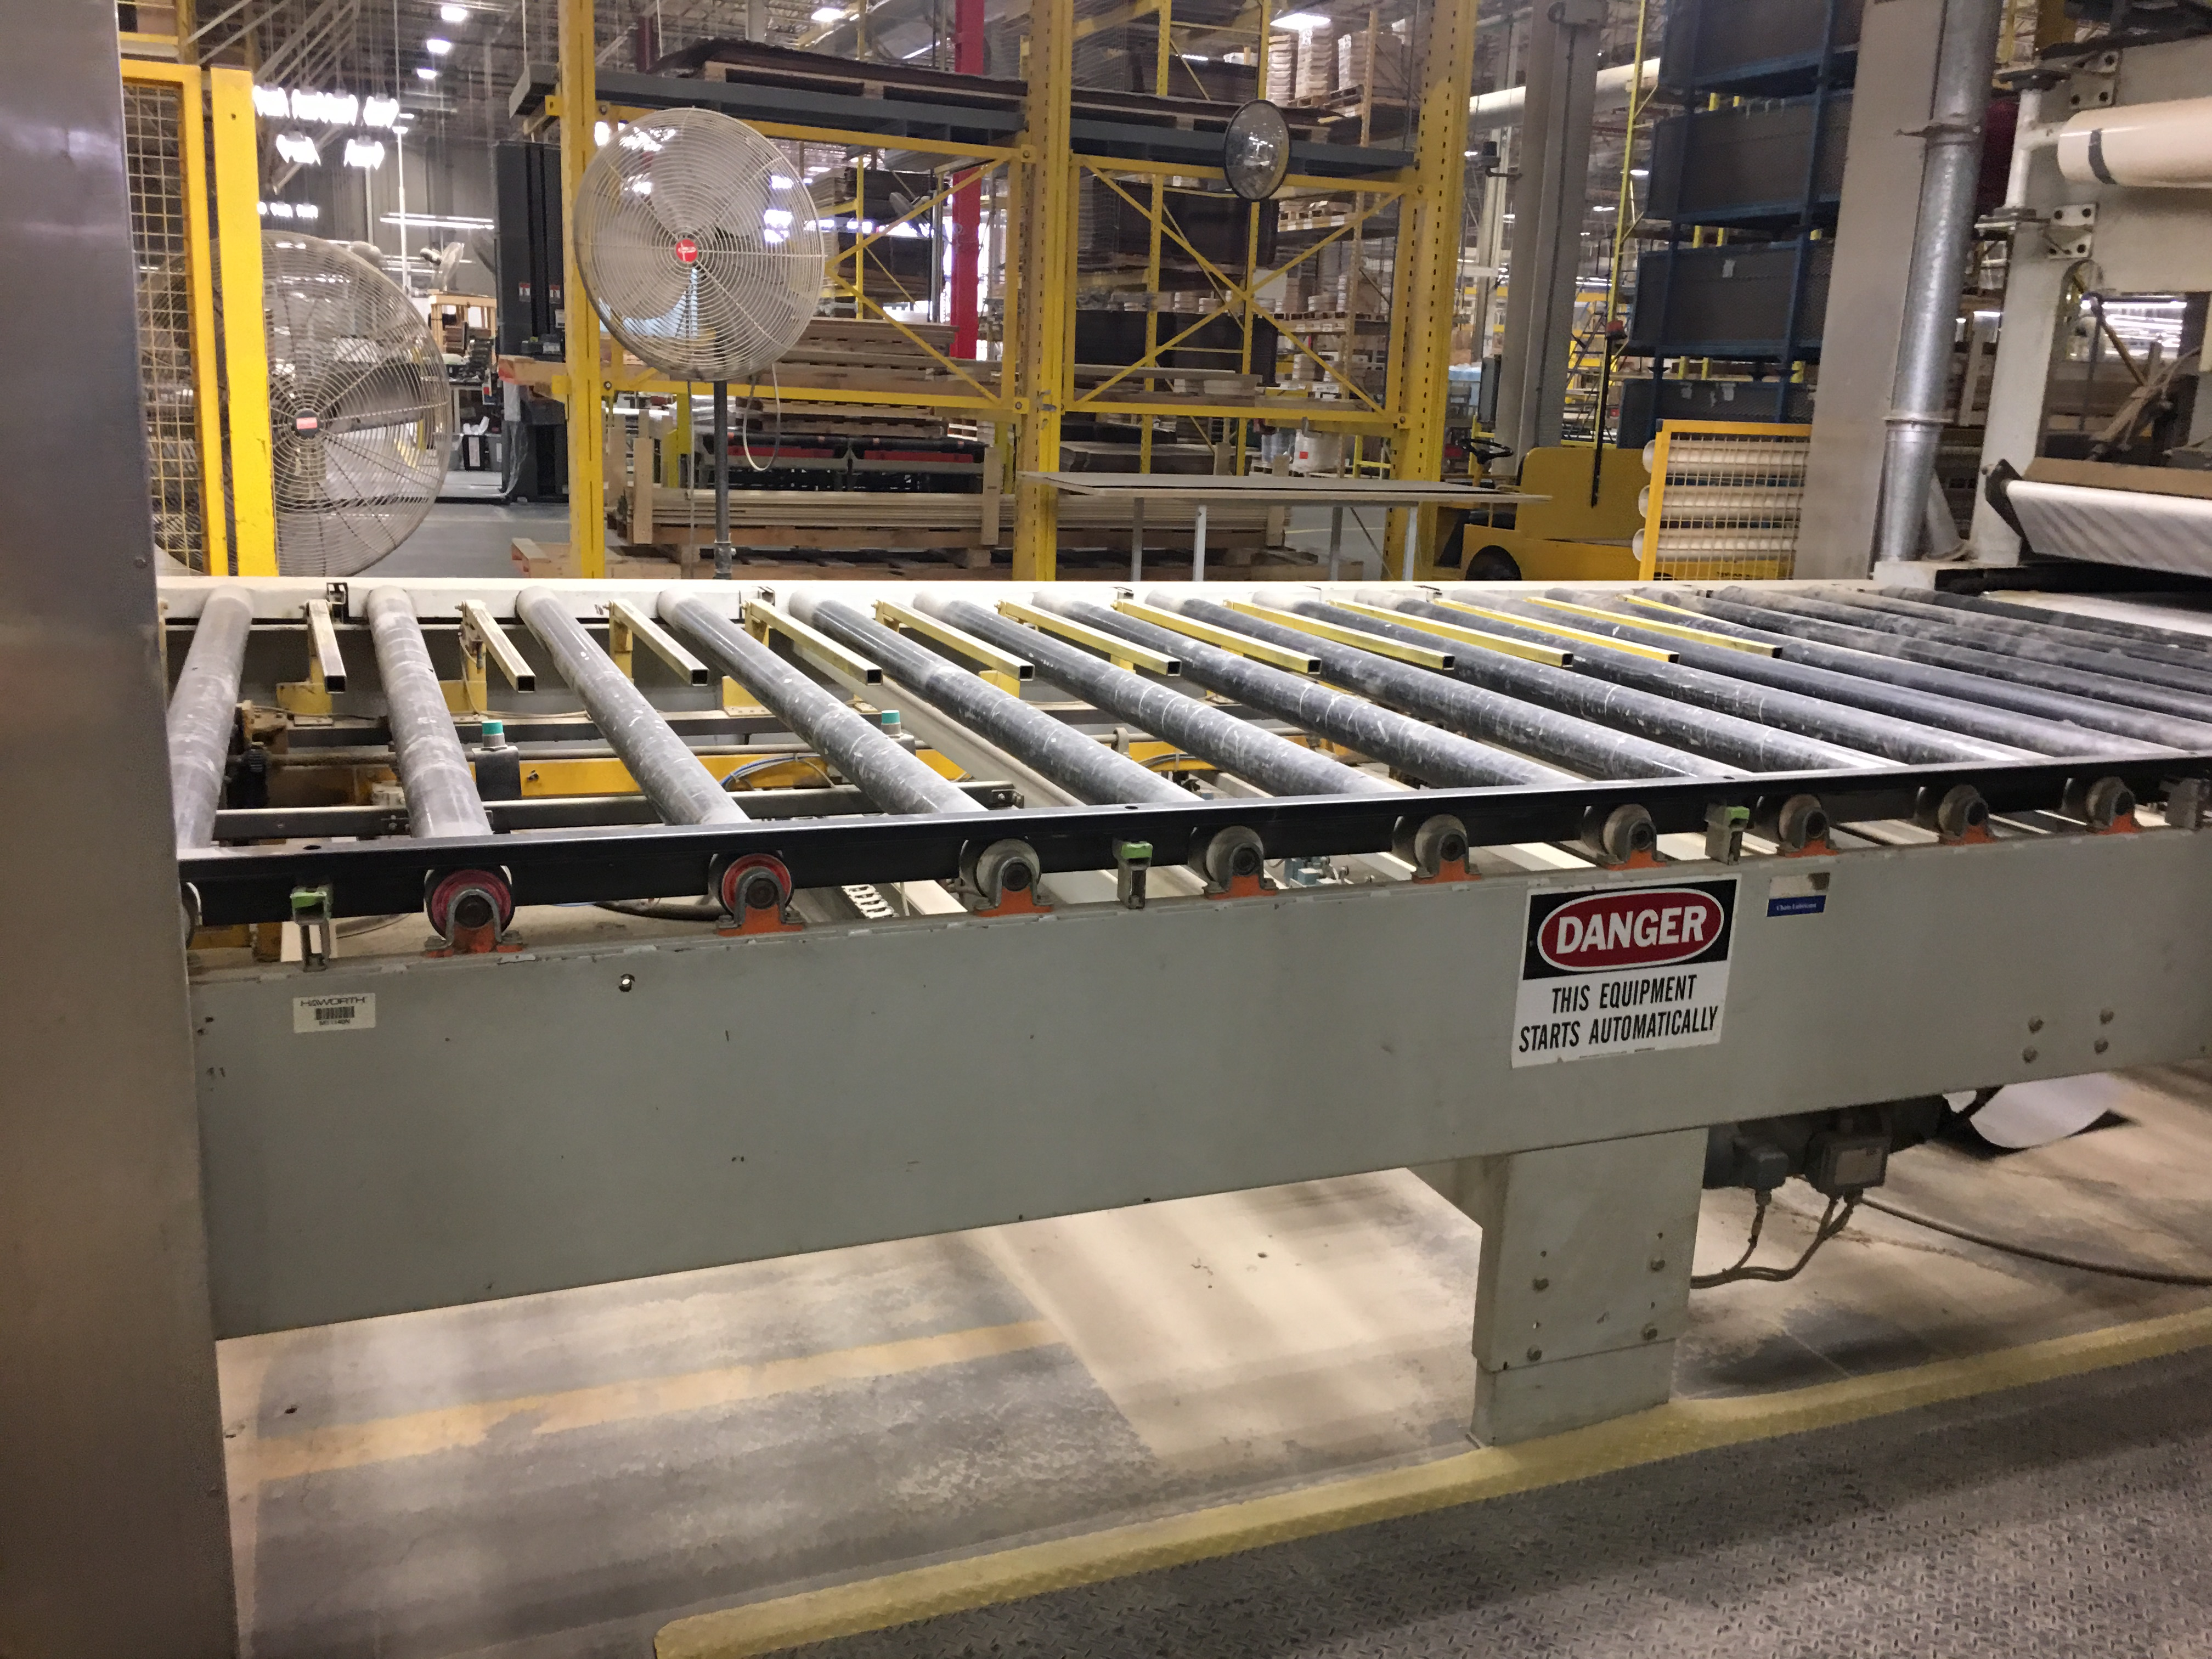 WEMHONER PRESS including infeed conveyor outfeed conveyor - Image 8 of 9